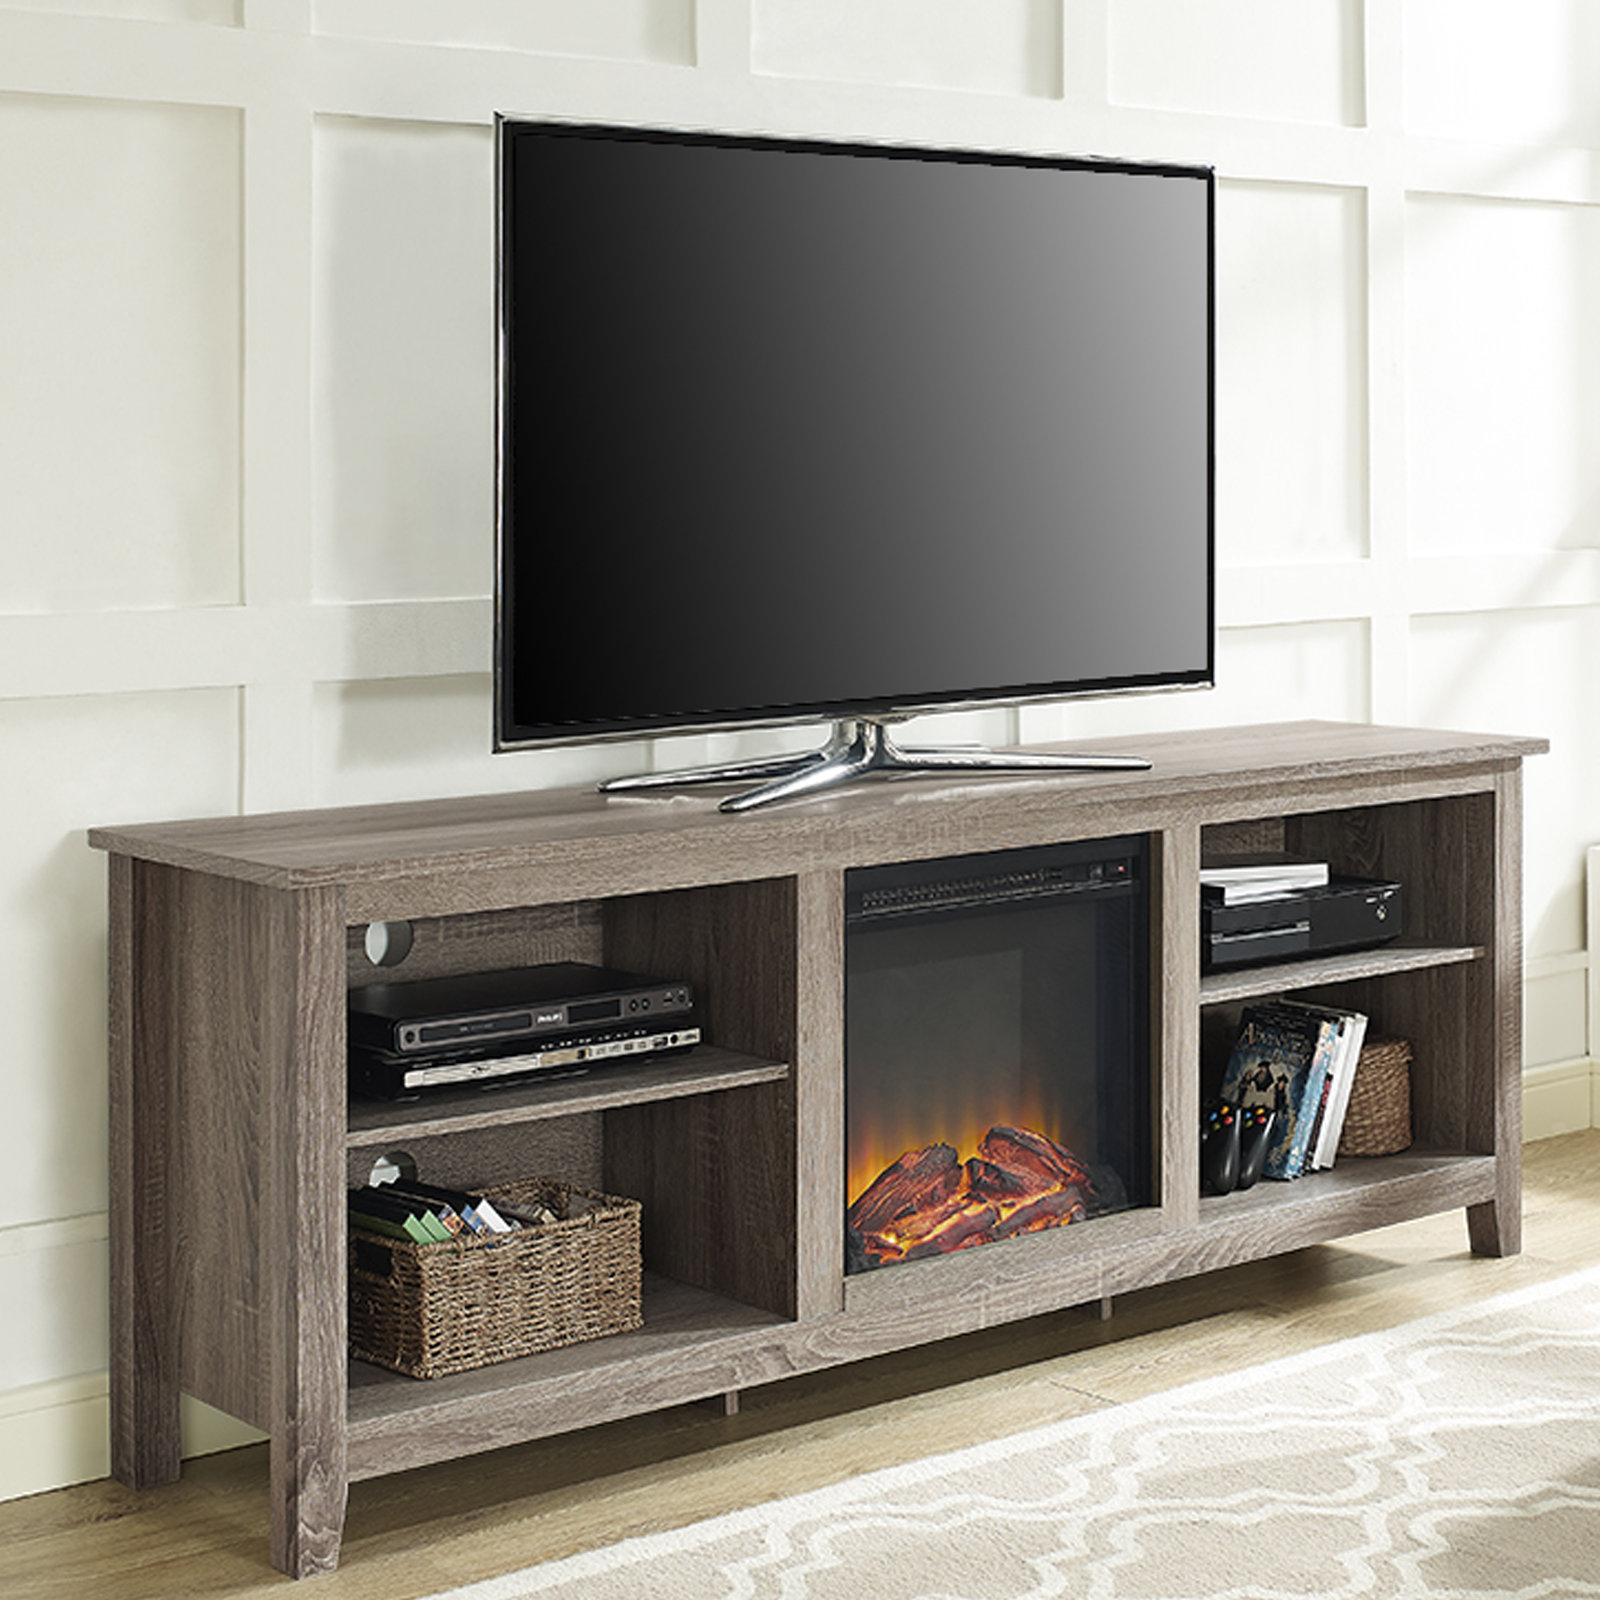 Fireplace Tv Stands & Entertainment Centers You'll Love | Wayfair (View 22 of 30)